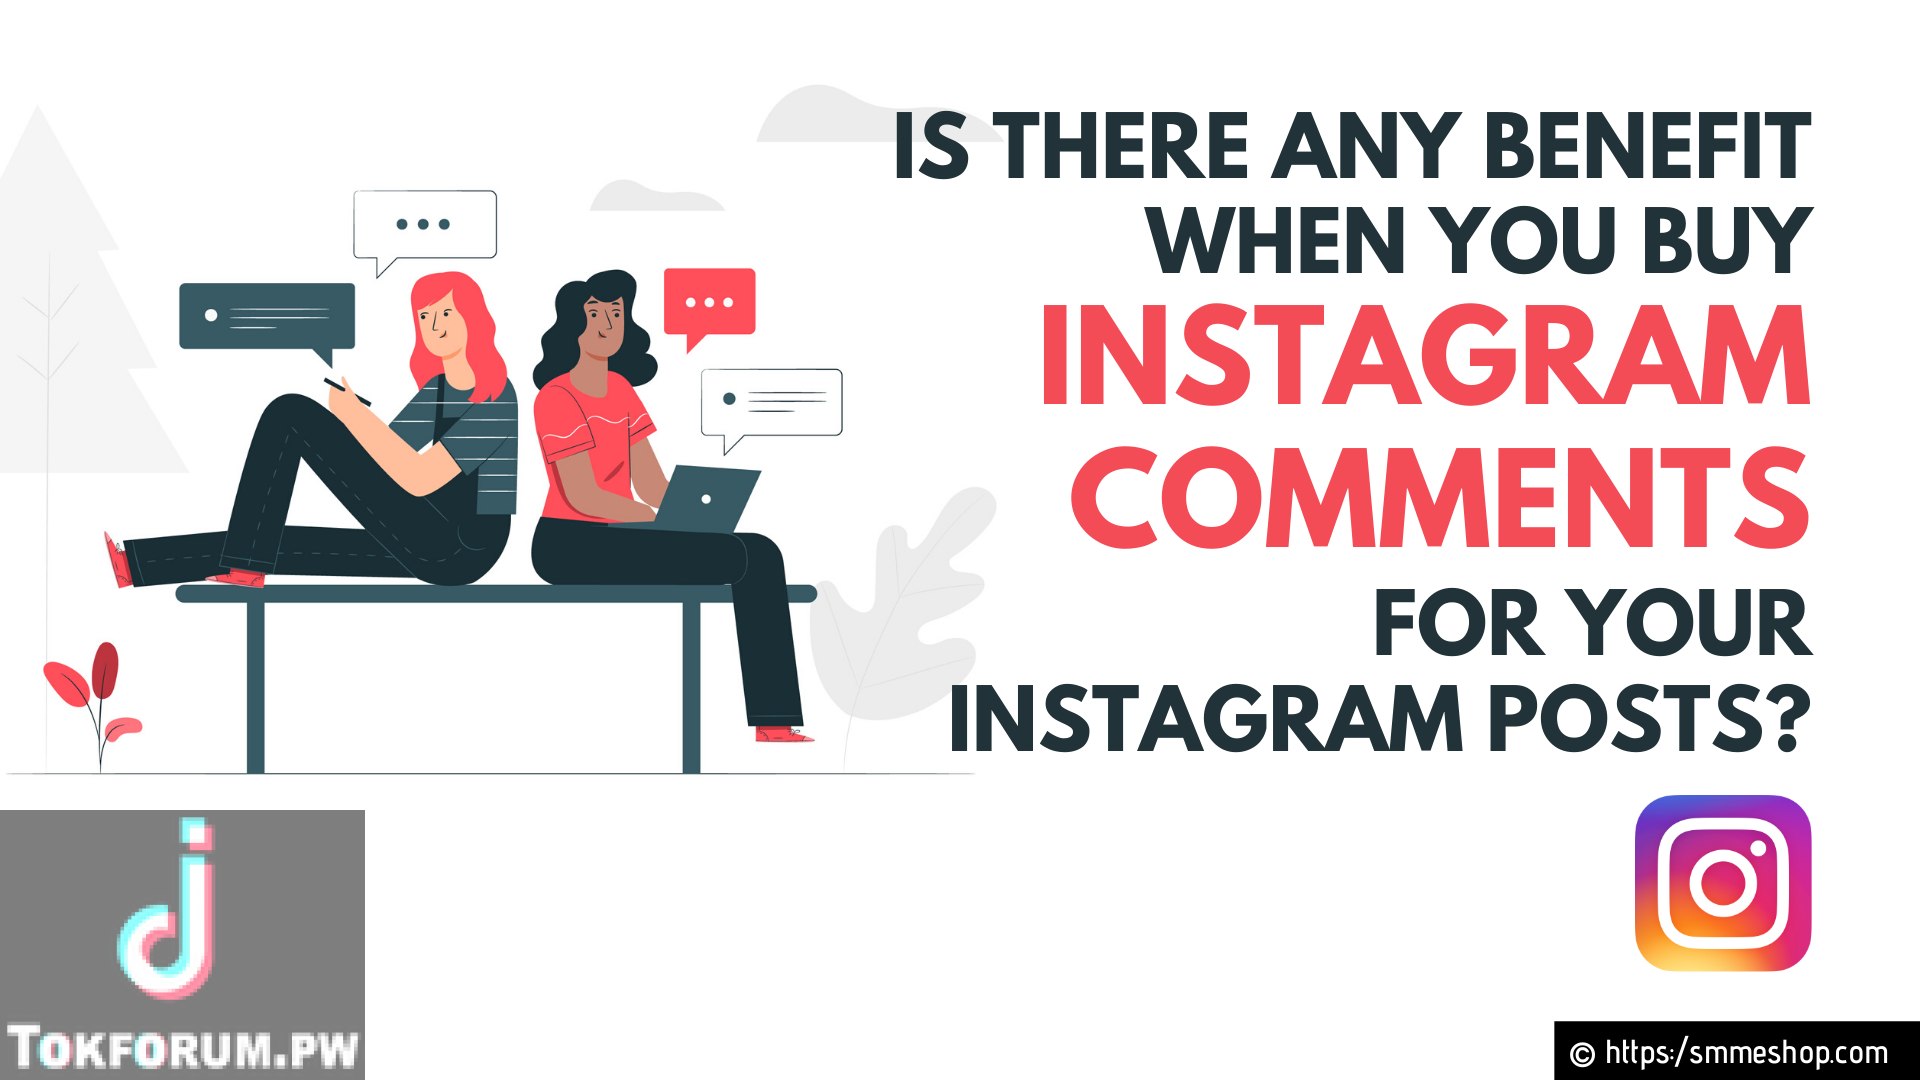 is-there-any-benefit-when-you-buy-instagram-comments-for-your-instagram-posts_h1587744287.png